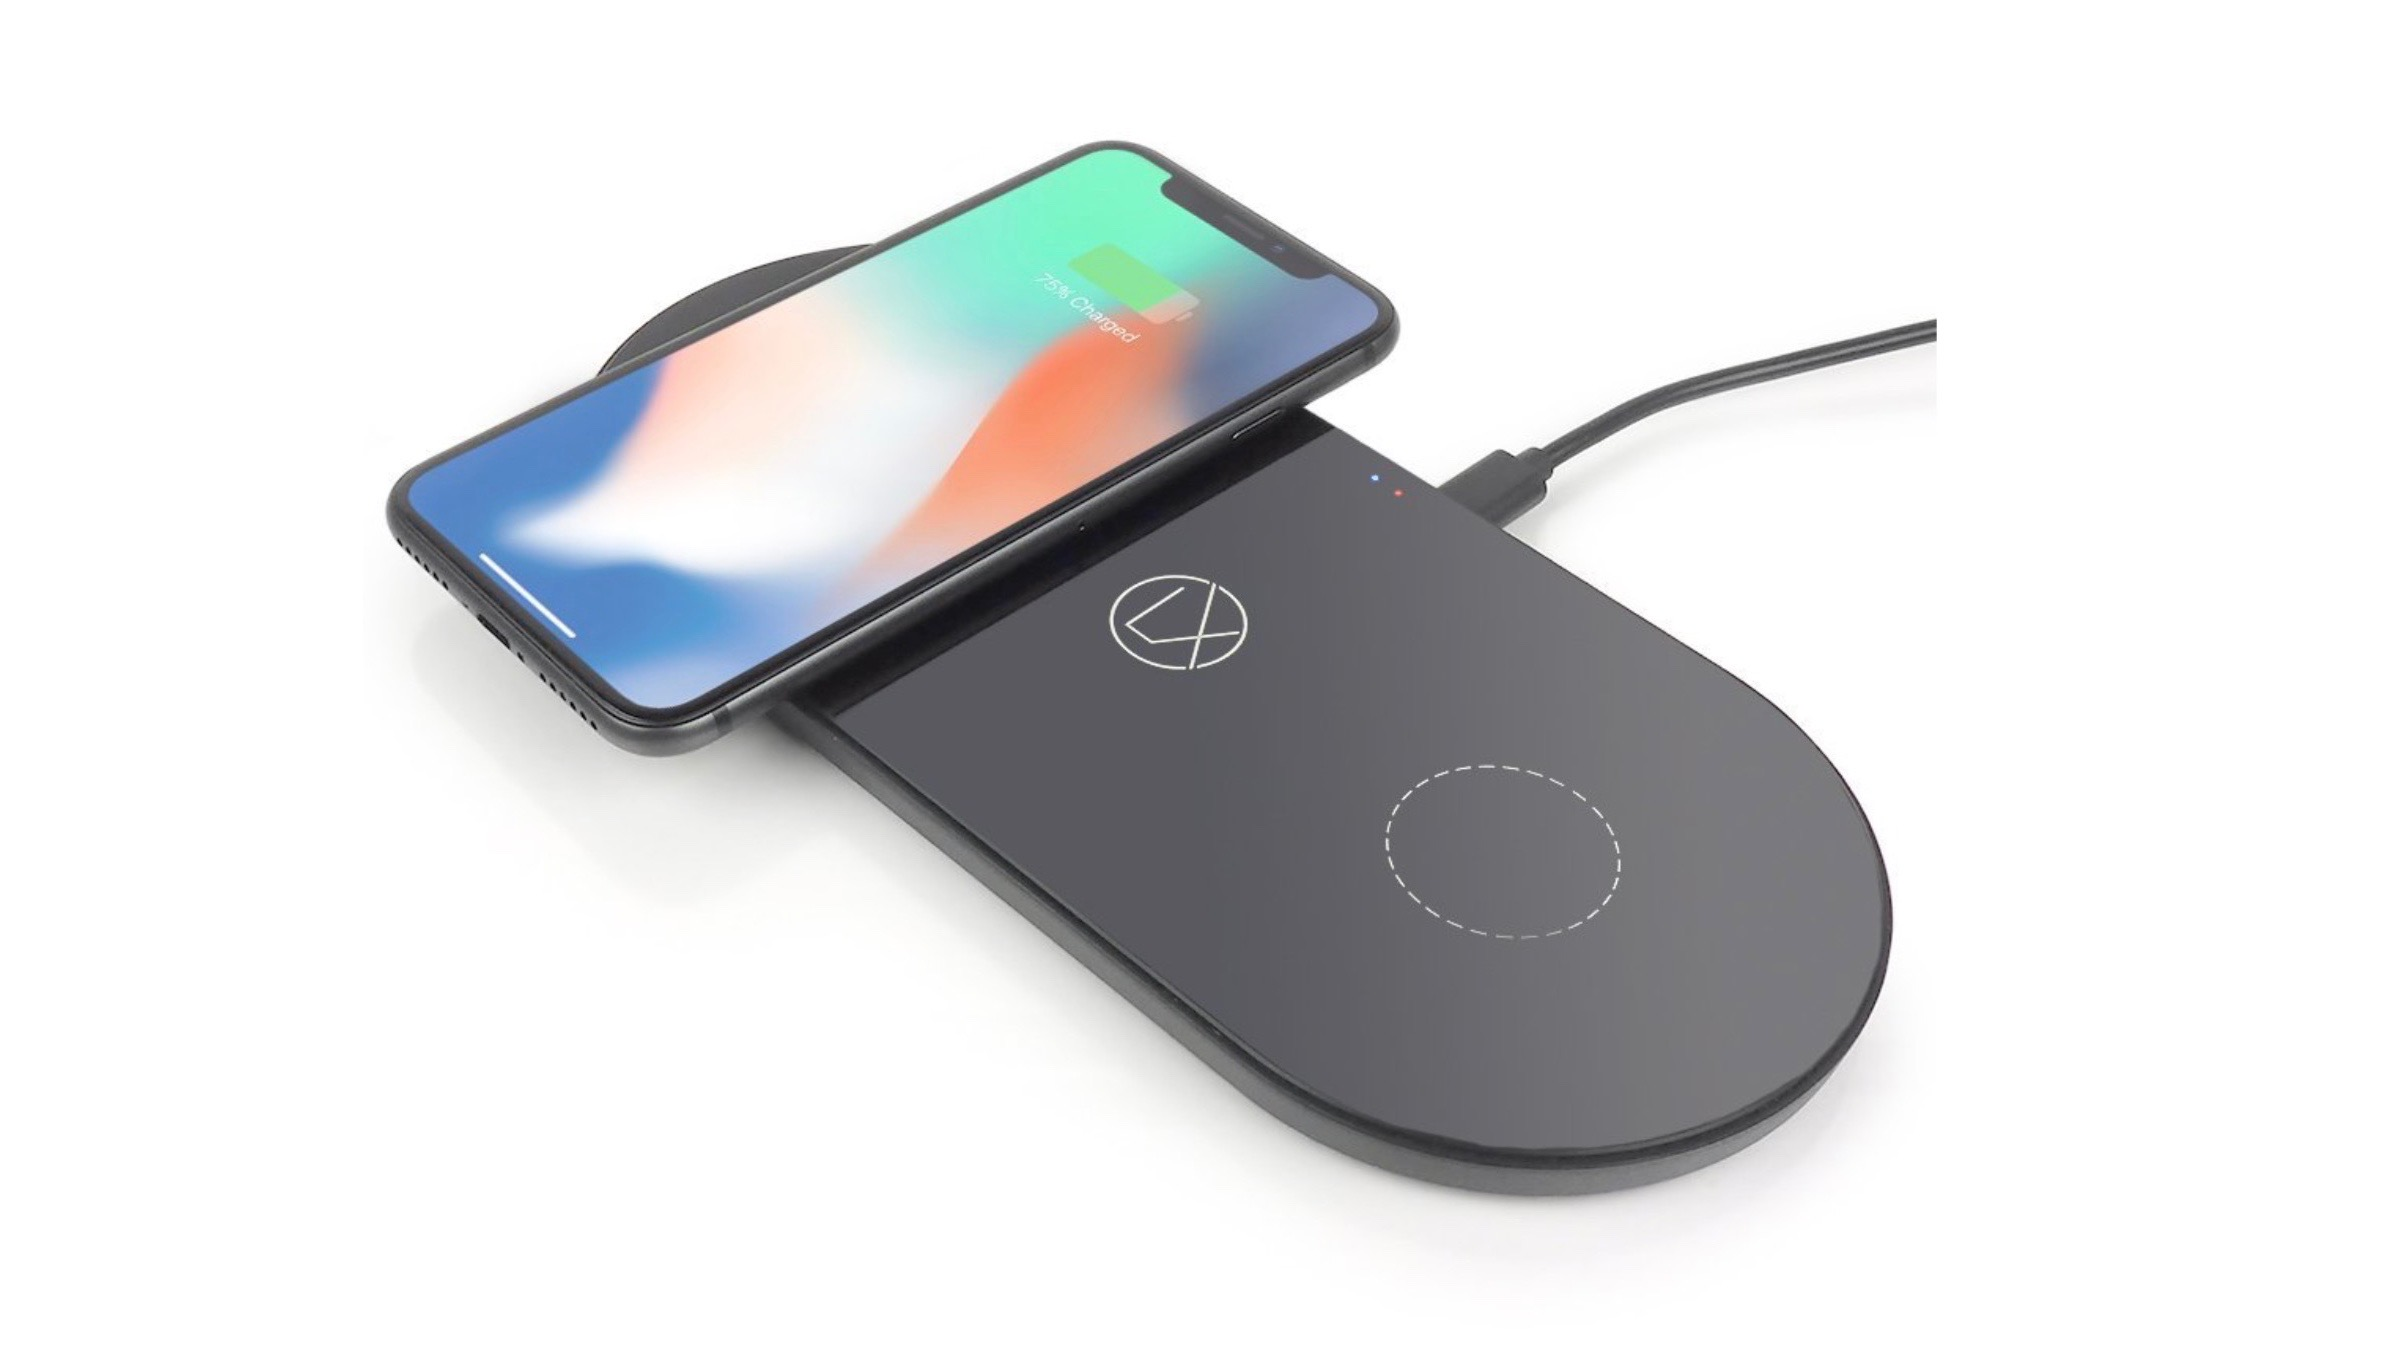 LXORY releases sharp USB-C/Lightning powered Qi dual wireless charger for iPhone